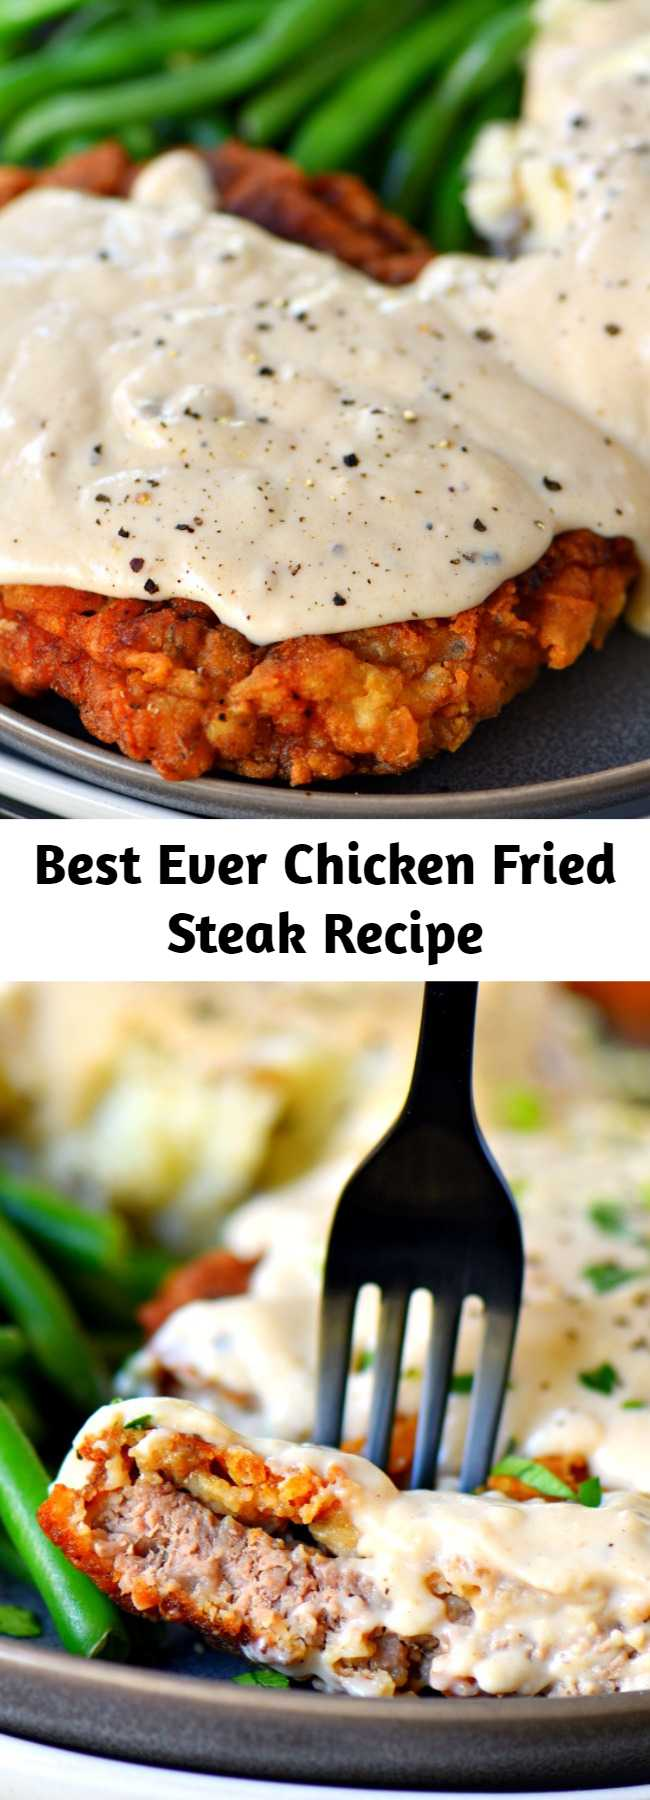 Best Ever Chicken Fried Steak Recipe - This Chicken Fried Steak is fried to golden perfection and topped with the creamiest gravy you can imagine. It's hard to imagine a more quintessential Southern meal. The hard part is deciding whether you want to make it for breakfast or dinner. My family can't get enough of these tender steaks with that delightful crispy, crunchy coating. And the gravy? Heaven! #chickenfriedsteak #dinner #recipe #entree #gravy #steak #recipes